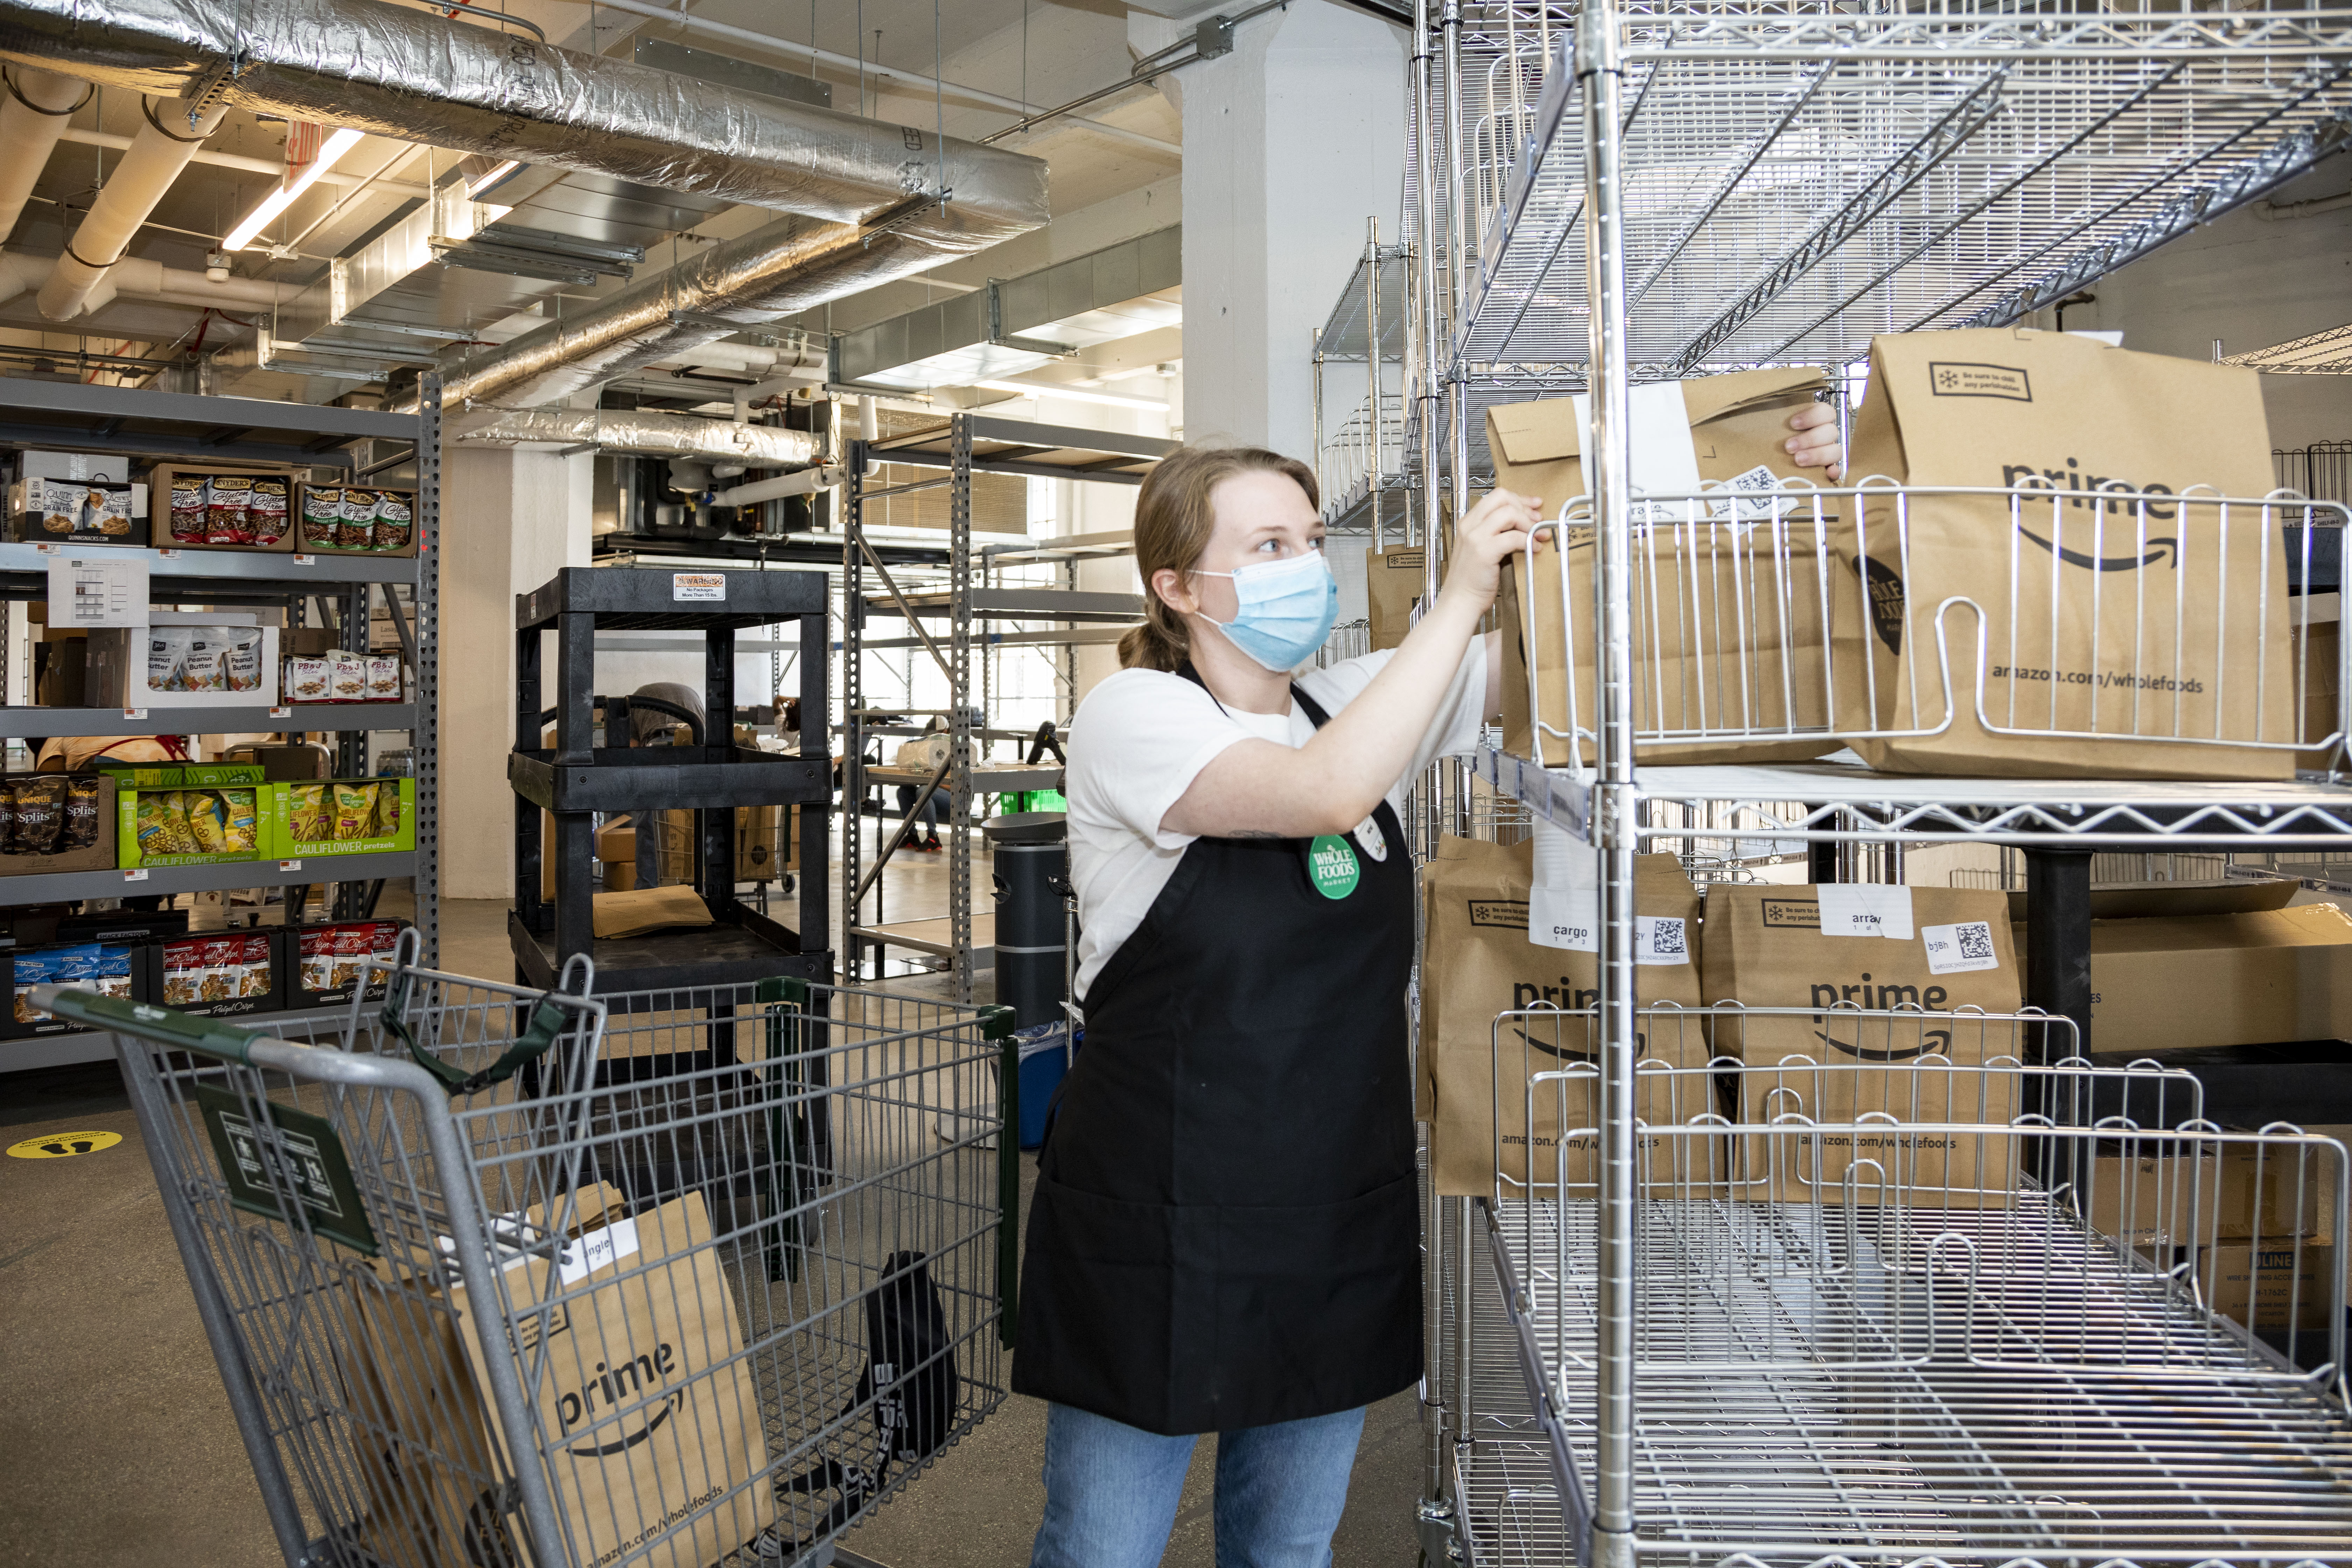 Grocer Whole Foods, an Amazon subsidiary, is testing an online-based, delivery-only model in New York's Brooklyn borough. (Whole Foods)